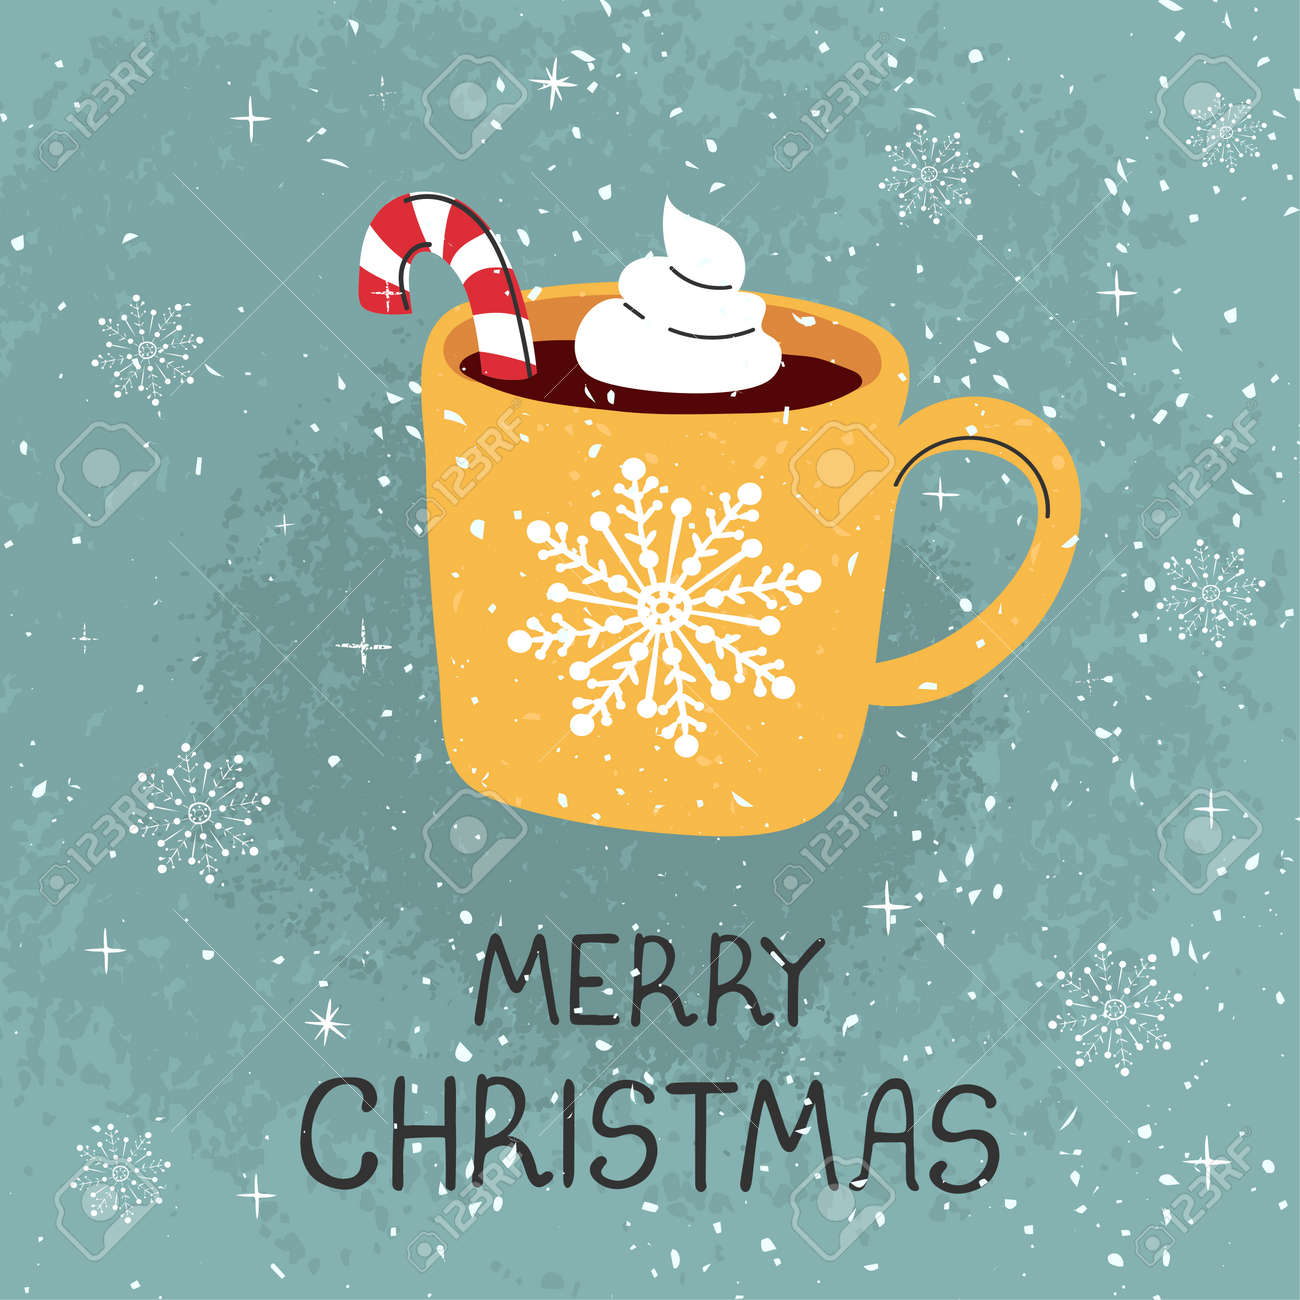 Vector modern greeting card with colorful hand draw illustration of mug with cocoa and Christmas cane. Merry christmas. For design poster, card, banner, t-shirt print, invitation, greeting card - 157362836